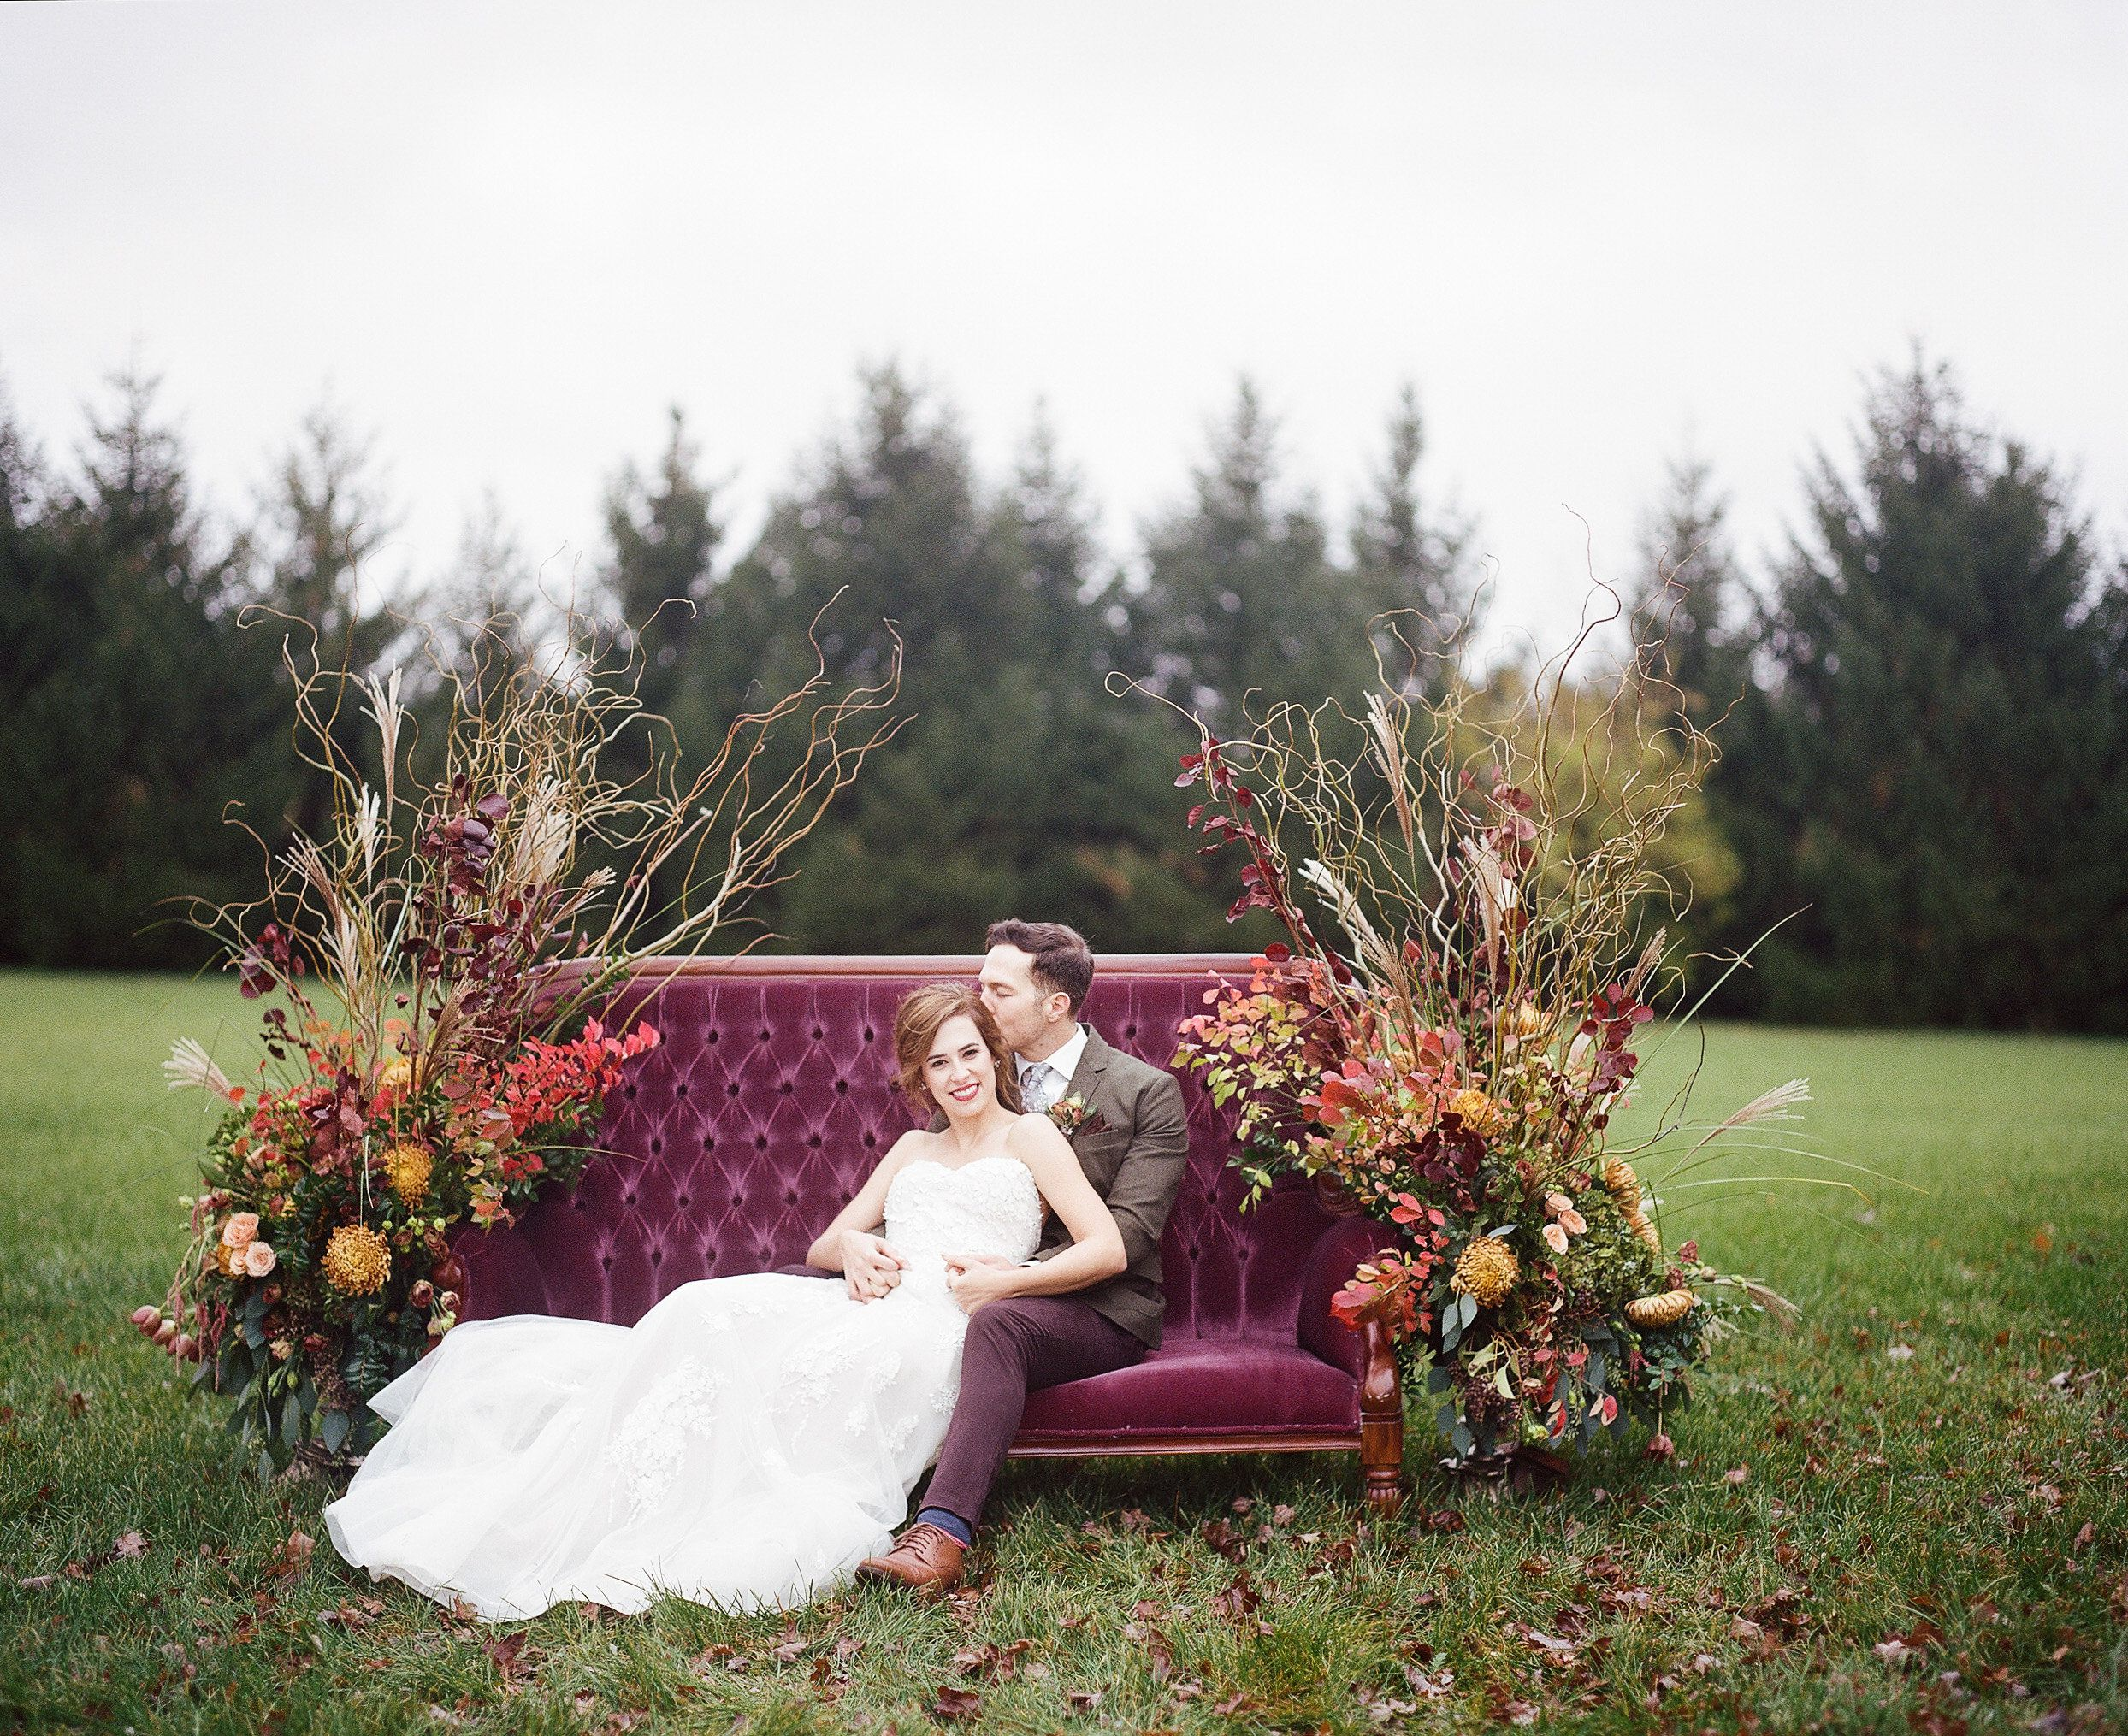 Lost And Found Vintage Rentals Dayton Ohio Our Vivian Sofa Being Used For Bridal Portraits Outdoor Fall Wedding Wedding Venue Decorations Outdoor Wedding